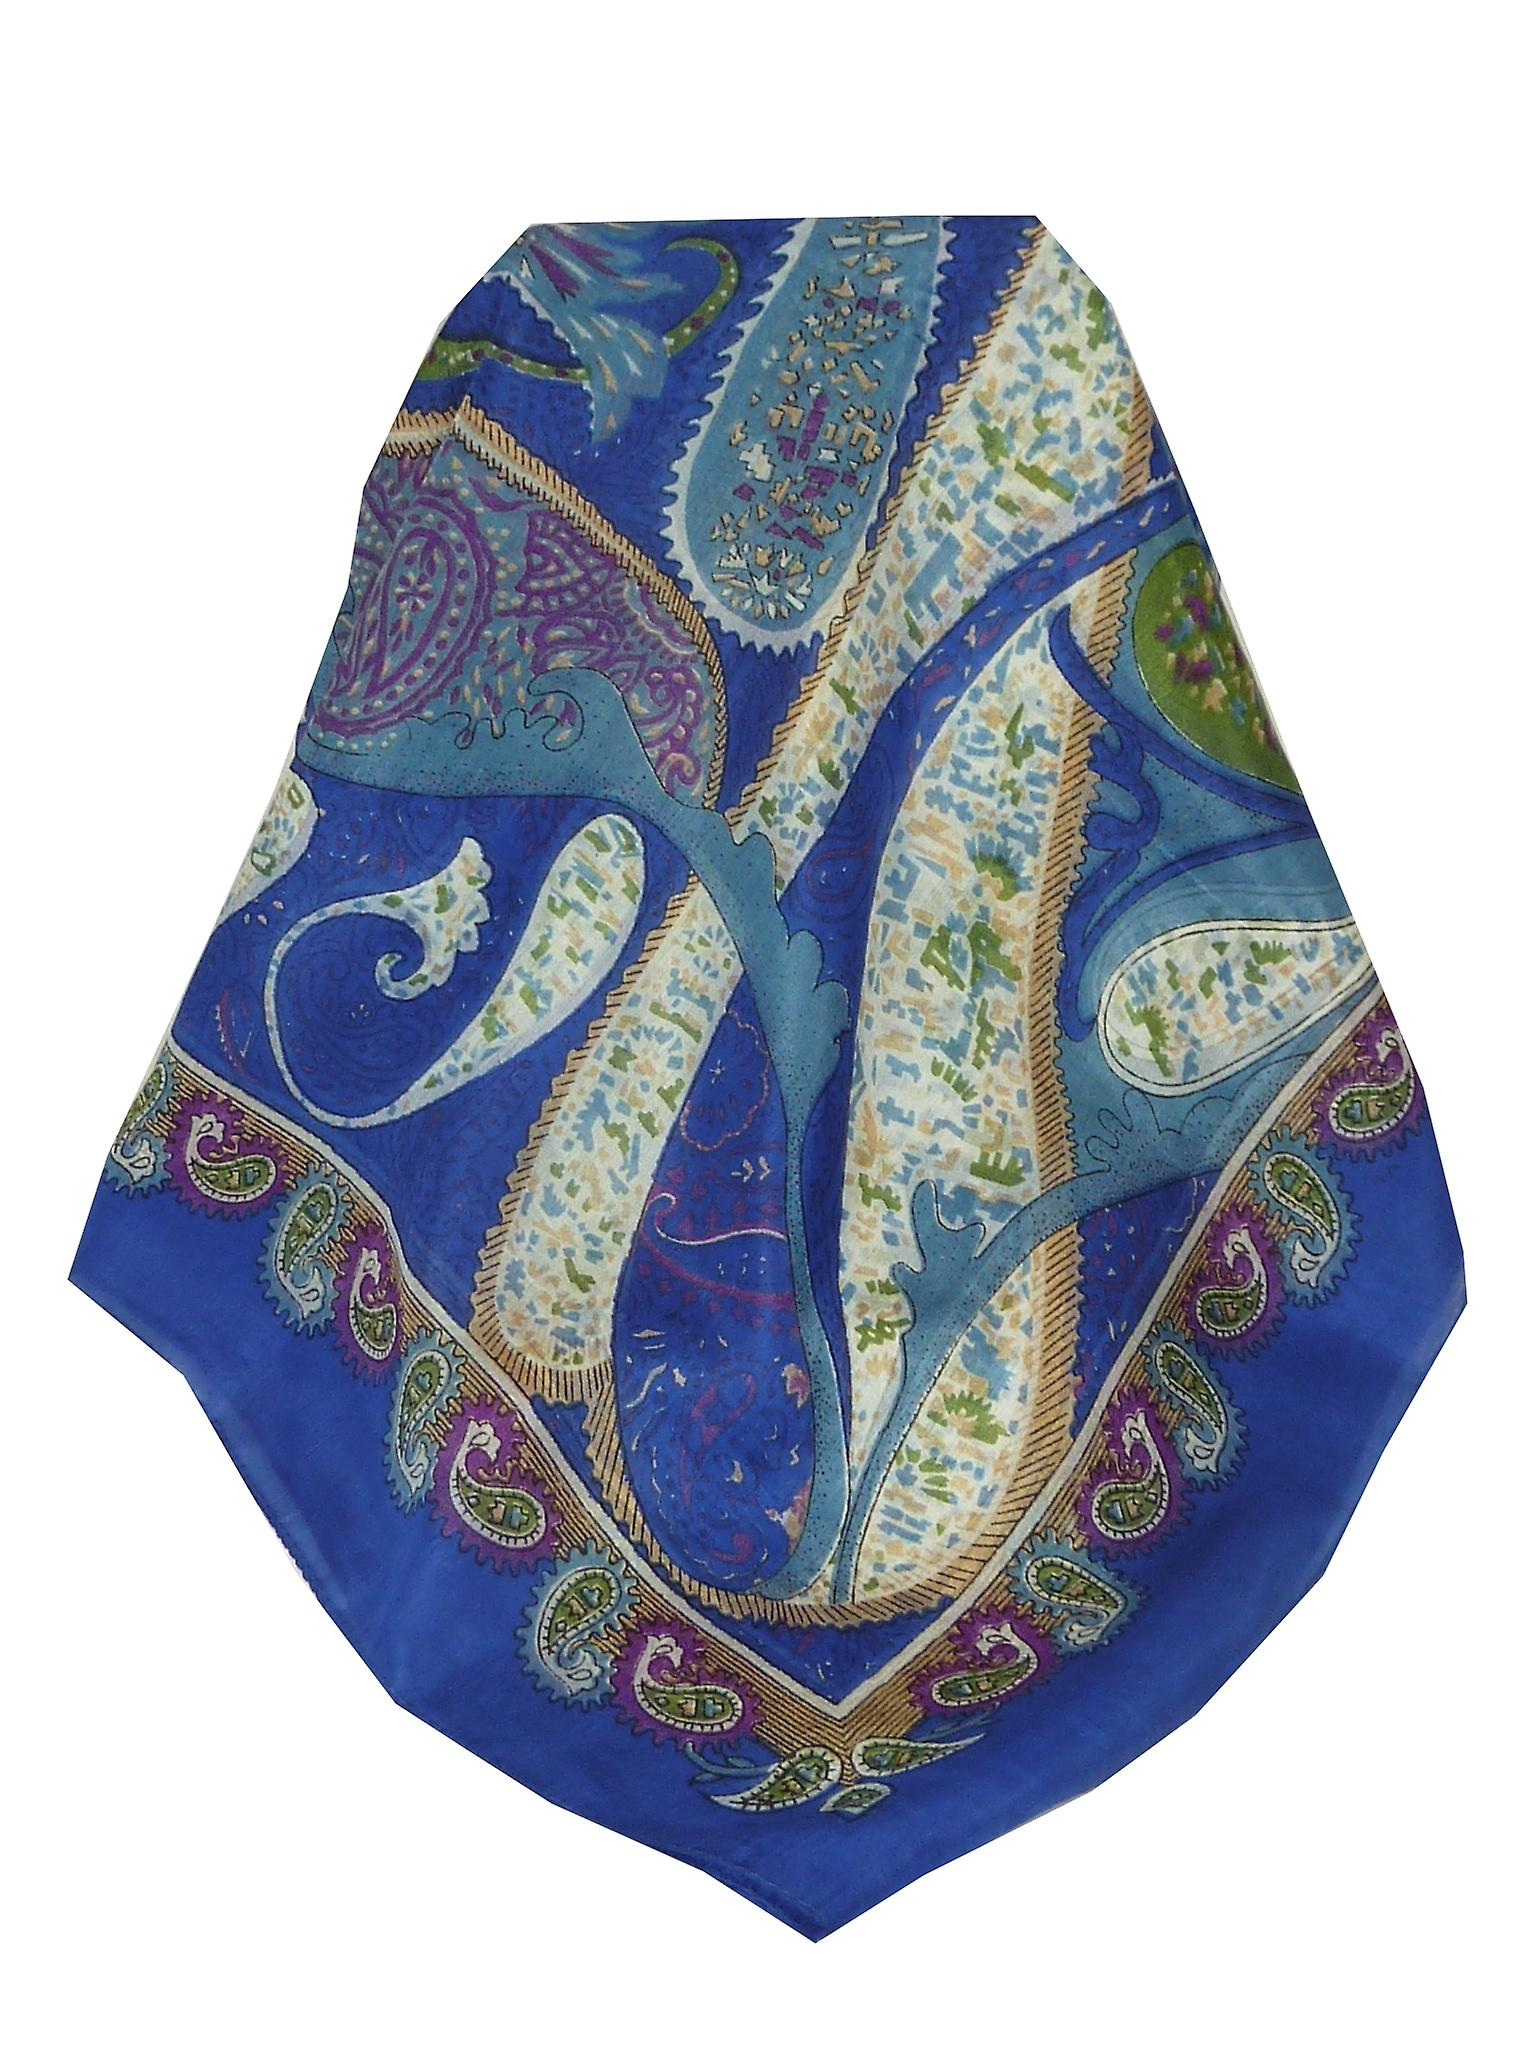 Mulberry Silk Classic Square Scarf Indore Blue by Pashmina & Silk